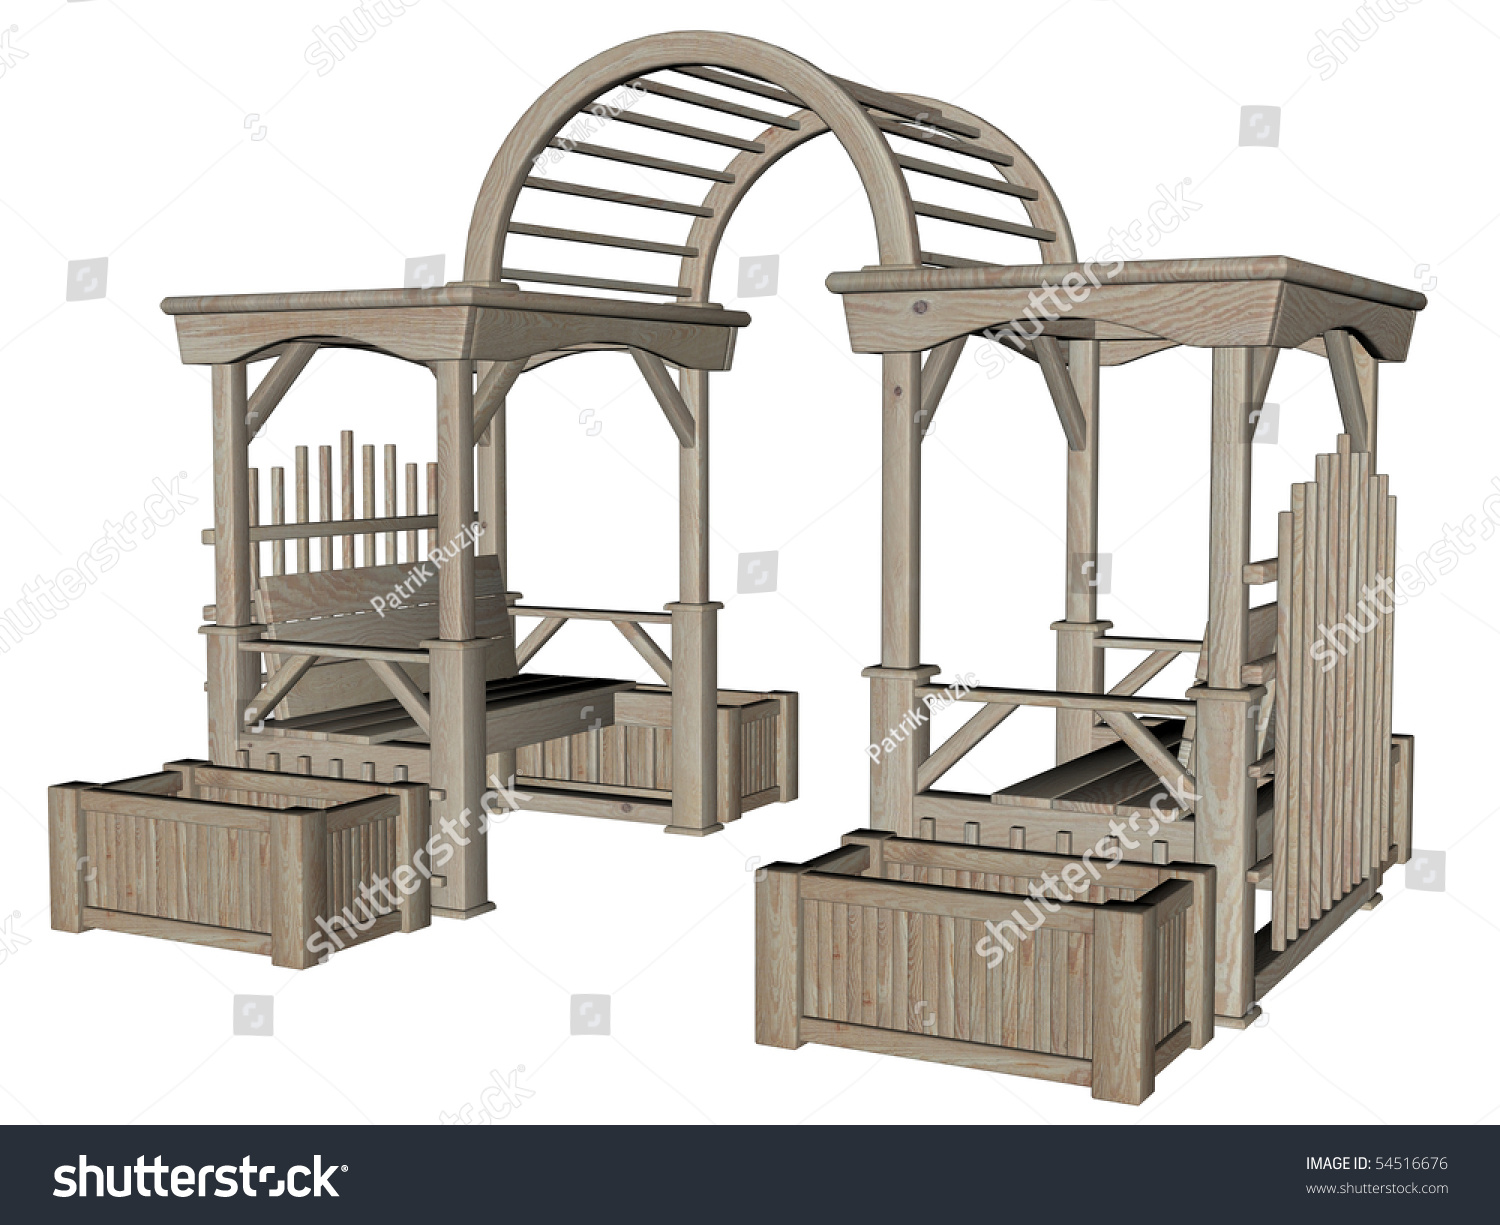 3d rendered garden furniture on white background isolated stock photo 54516676 shutterstock. Black Bedroom Furniture Sets. Home Design Ideas